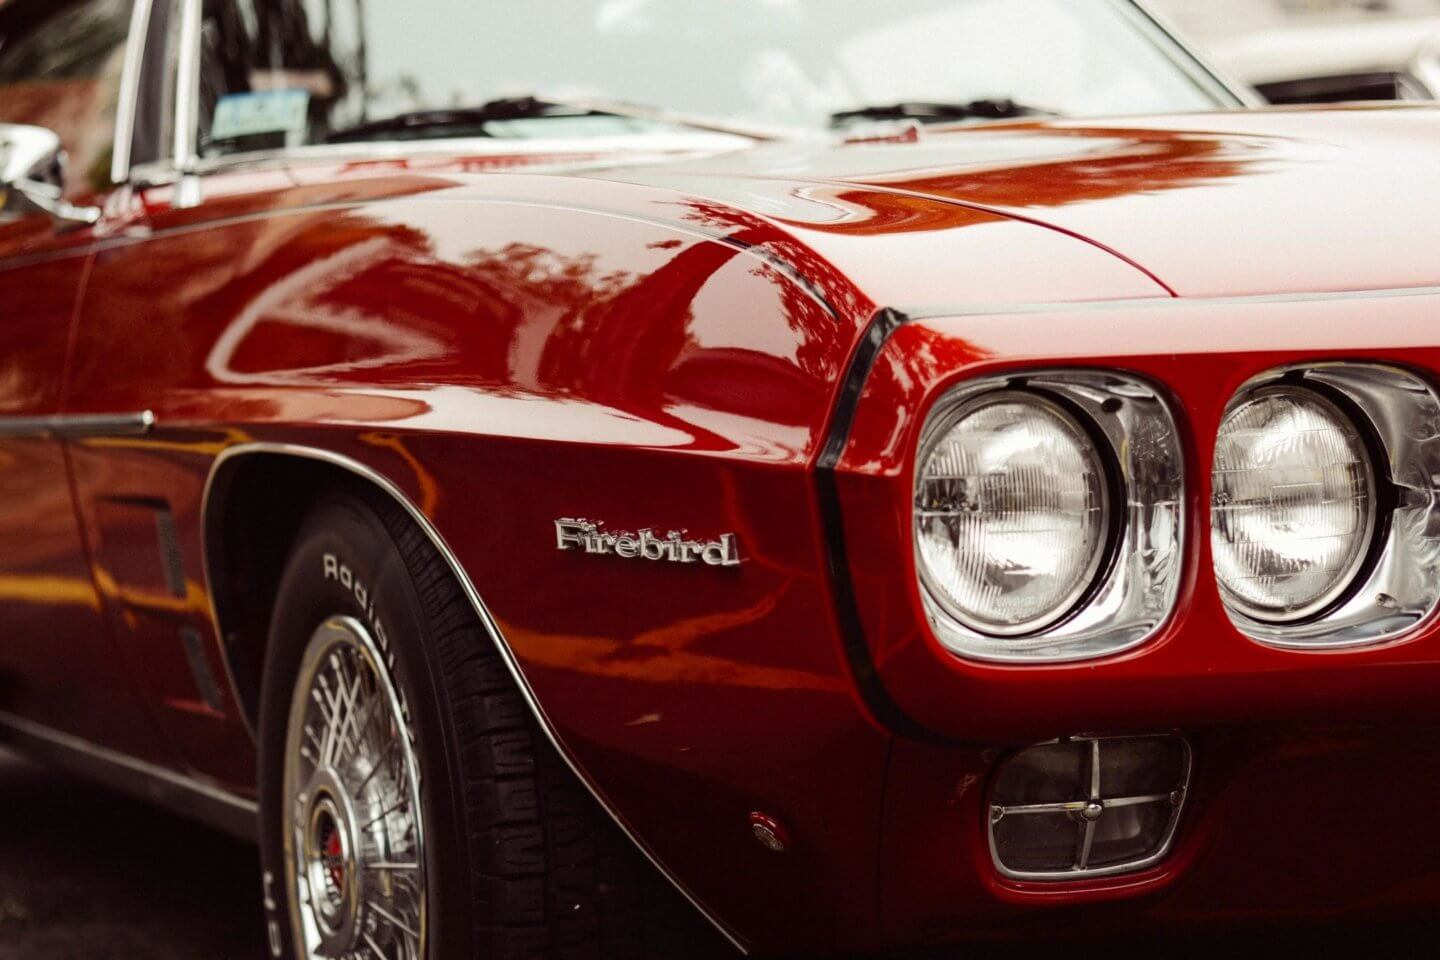 vintage-car-red-firebird